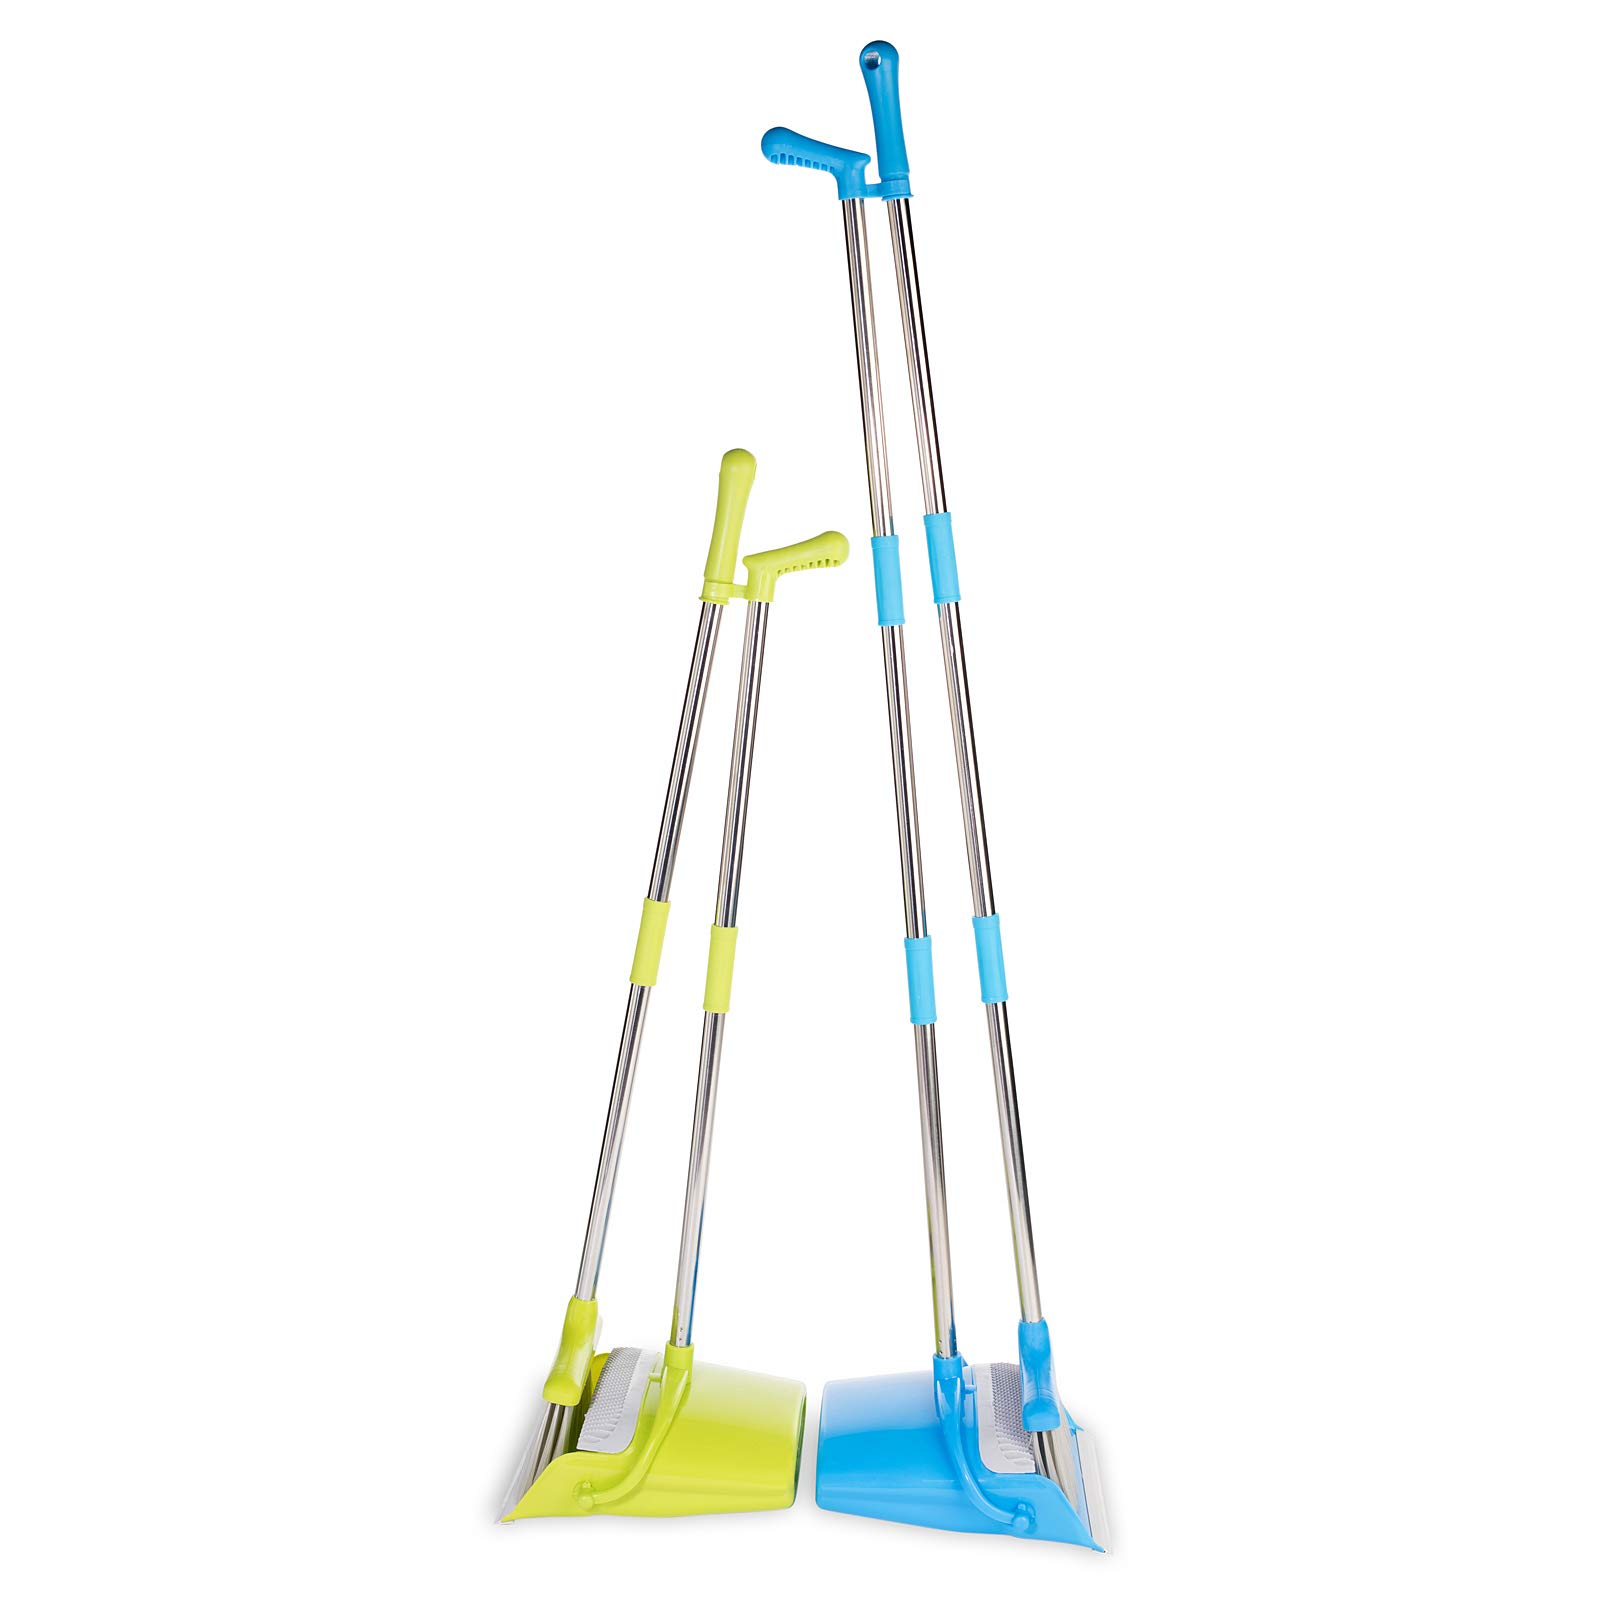 BristleComb Broom and Dustpan Set - Variable Handle Length Broom and Dustpan - Includes: Hand Brush and Dustpan Combo - Lightweight and Upright Stand for Cleaning Your Kitchen, Home, and Lobby (Green) by JFB Home Products (Image #6)